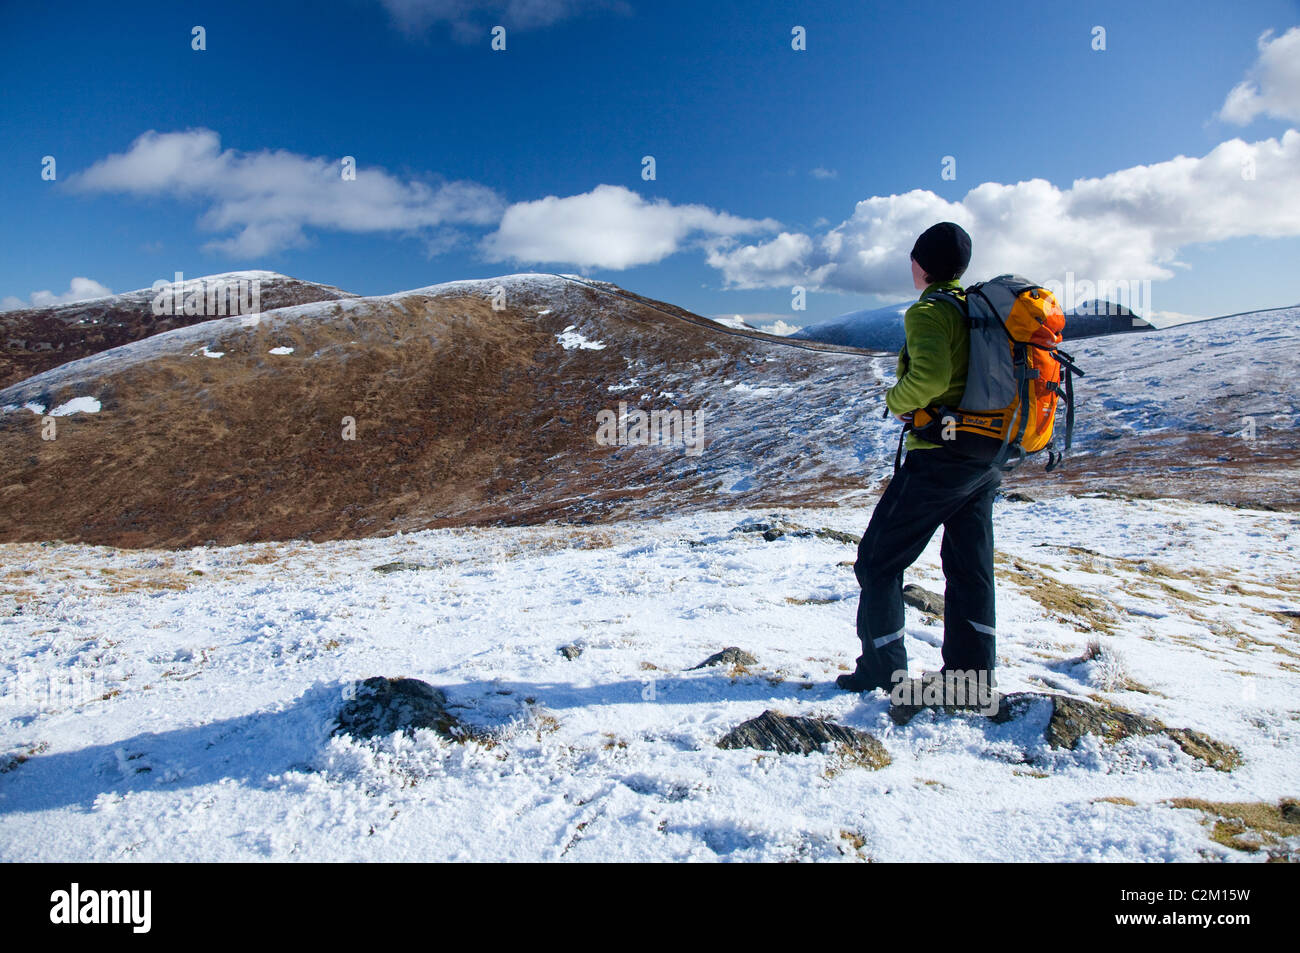 Winter walker near the summit of Ott Mountain, Mourne Mountains, County Down, Northern Ireland. - Stock Image